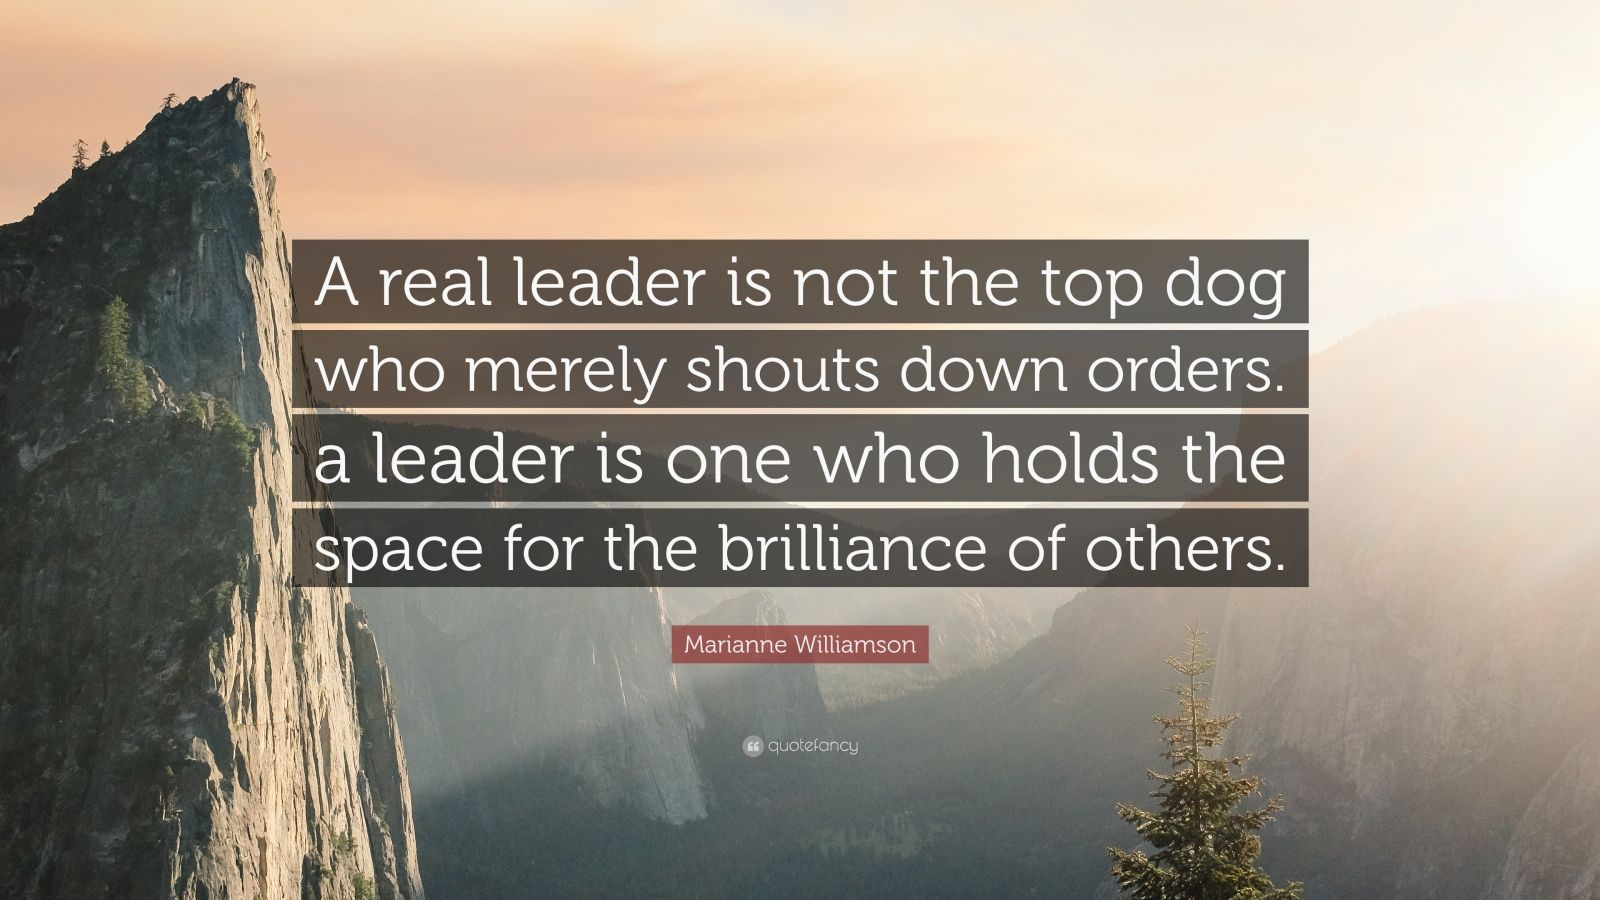 "Marianne Williamson Quote: ""A real leader is not the top dog who merely shouts down orders. a leader is one who holds the space for the brilliance of others."""